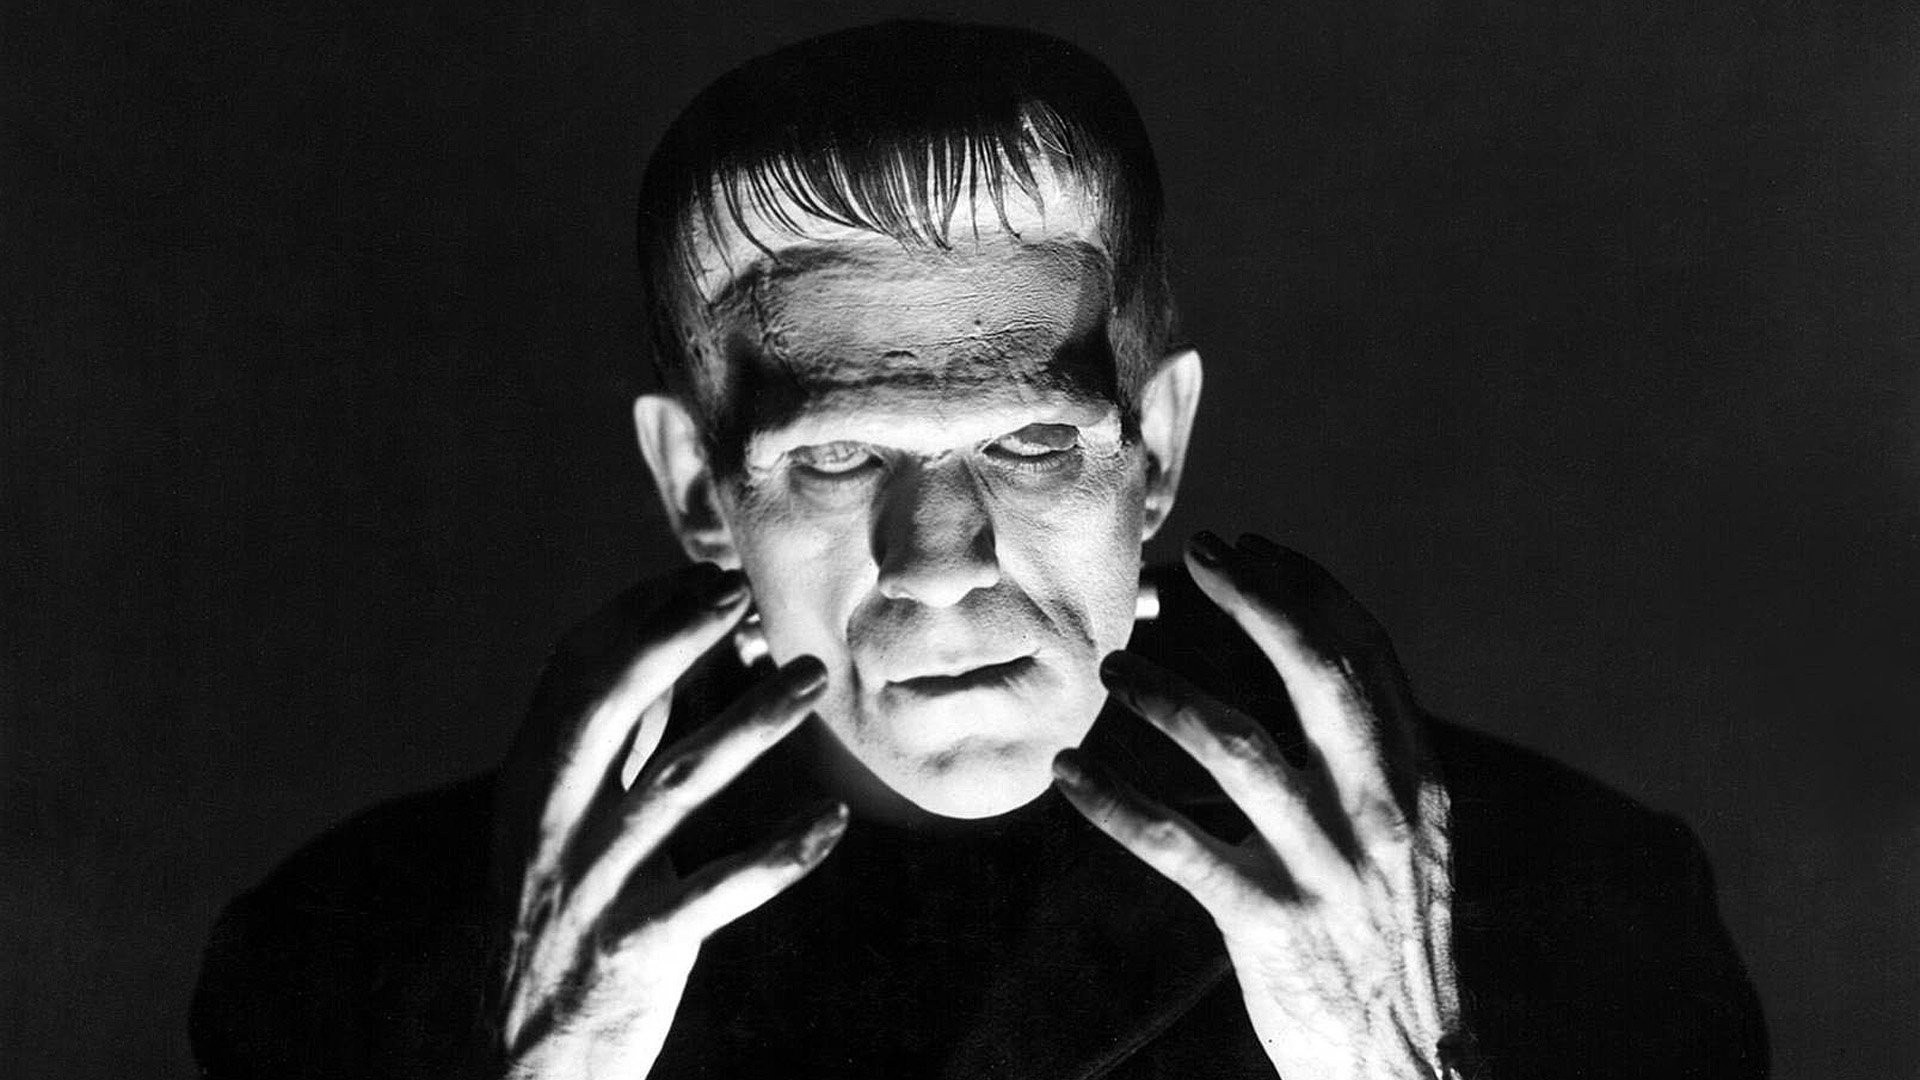 Universal Classic Monsters